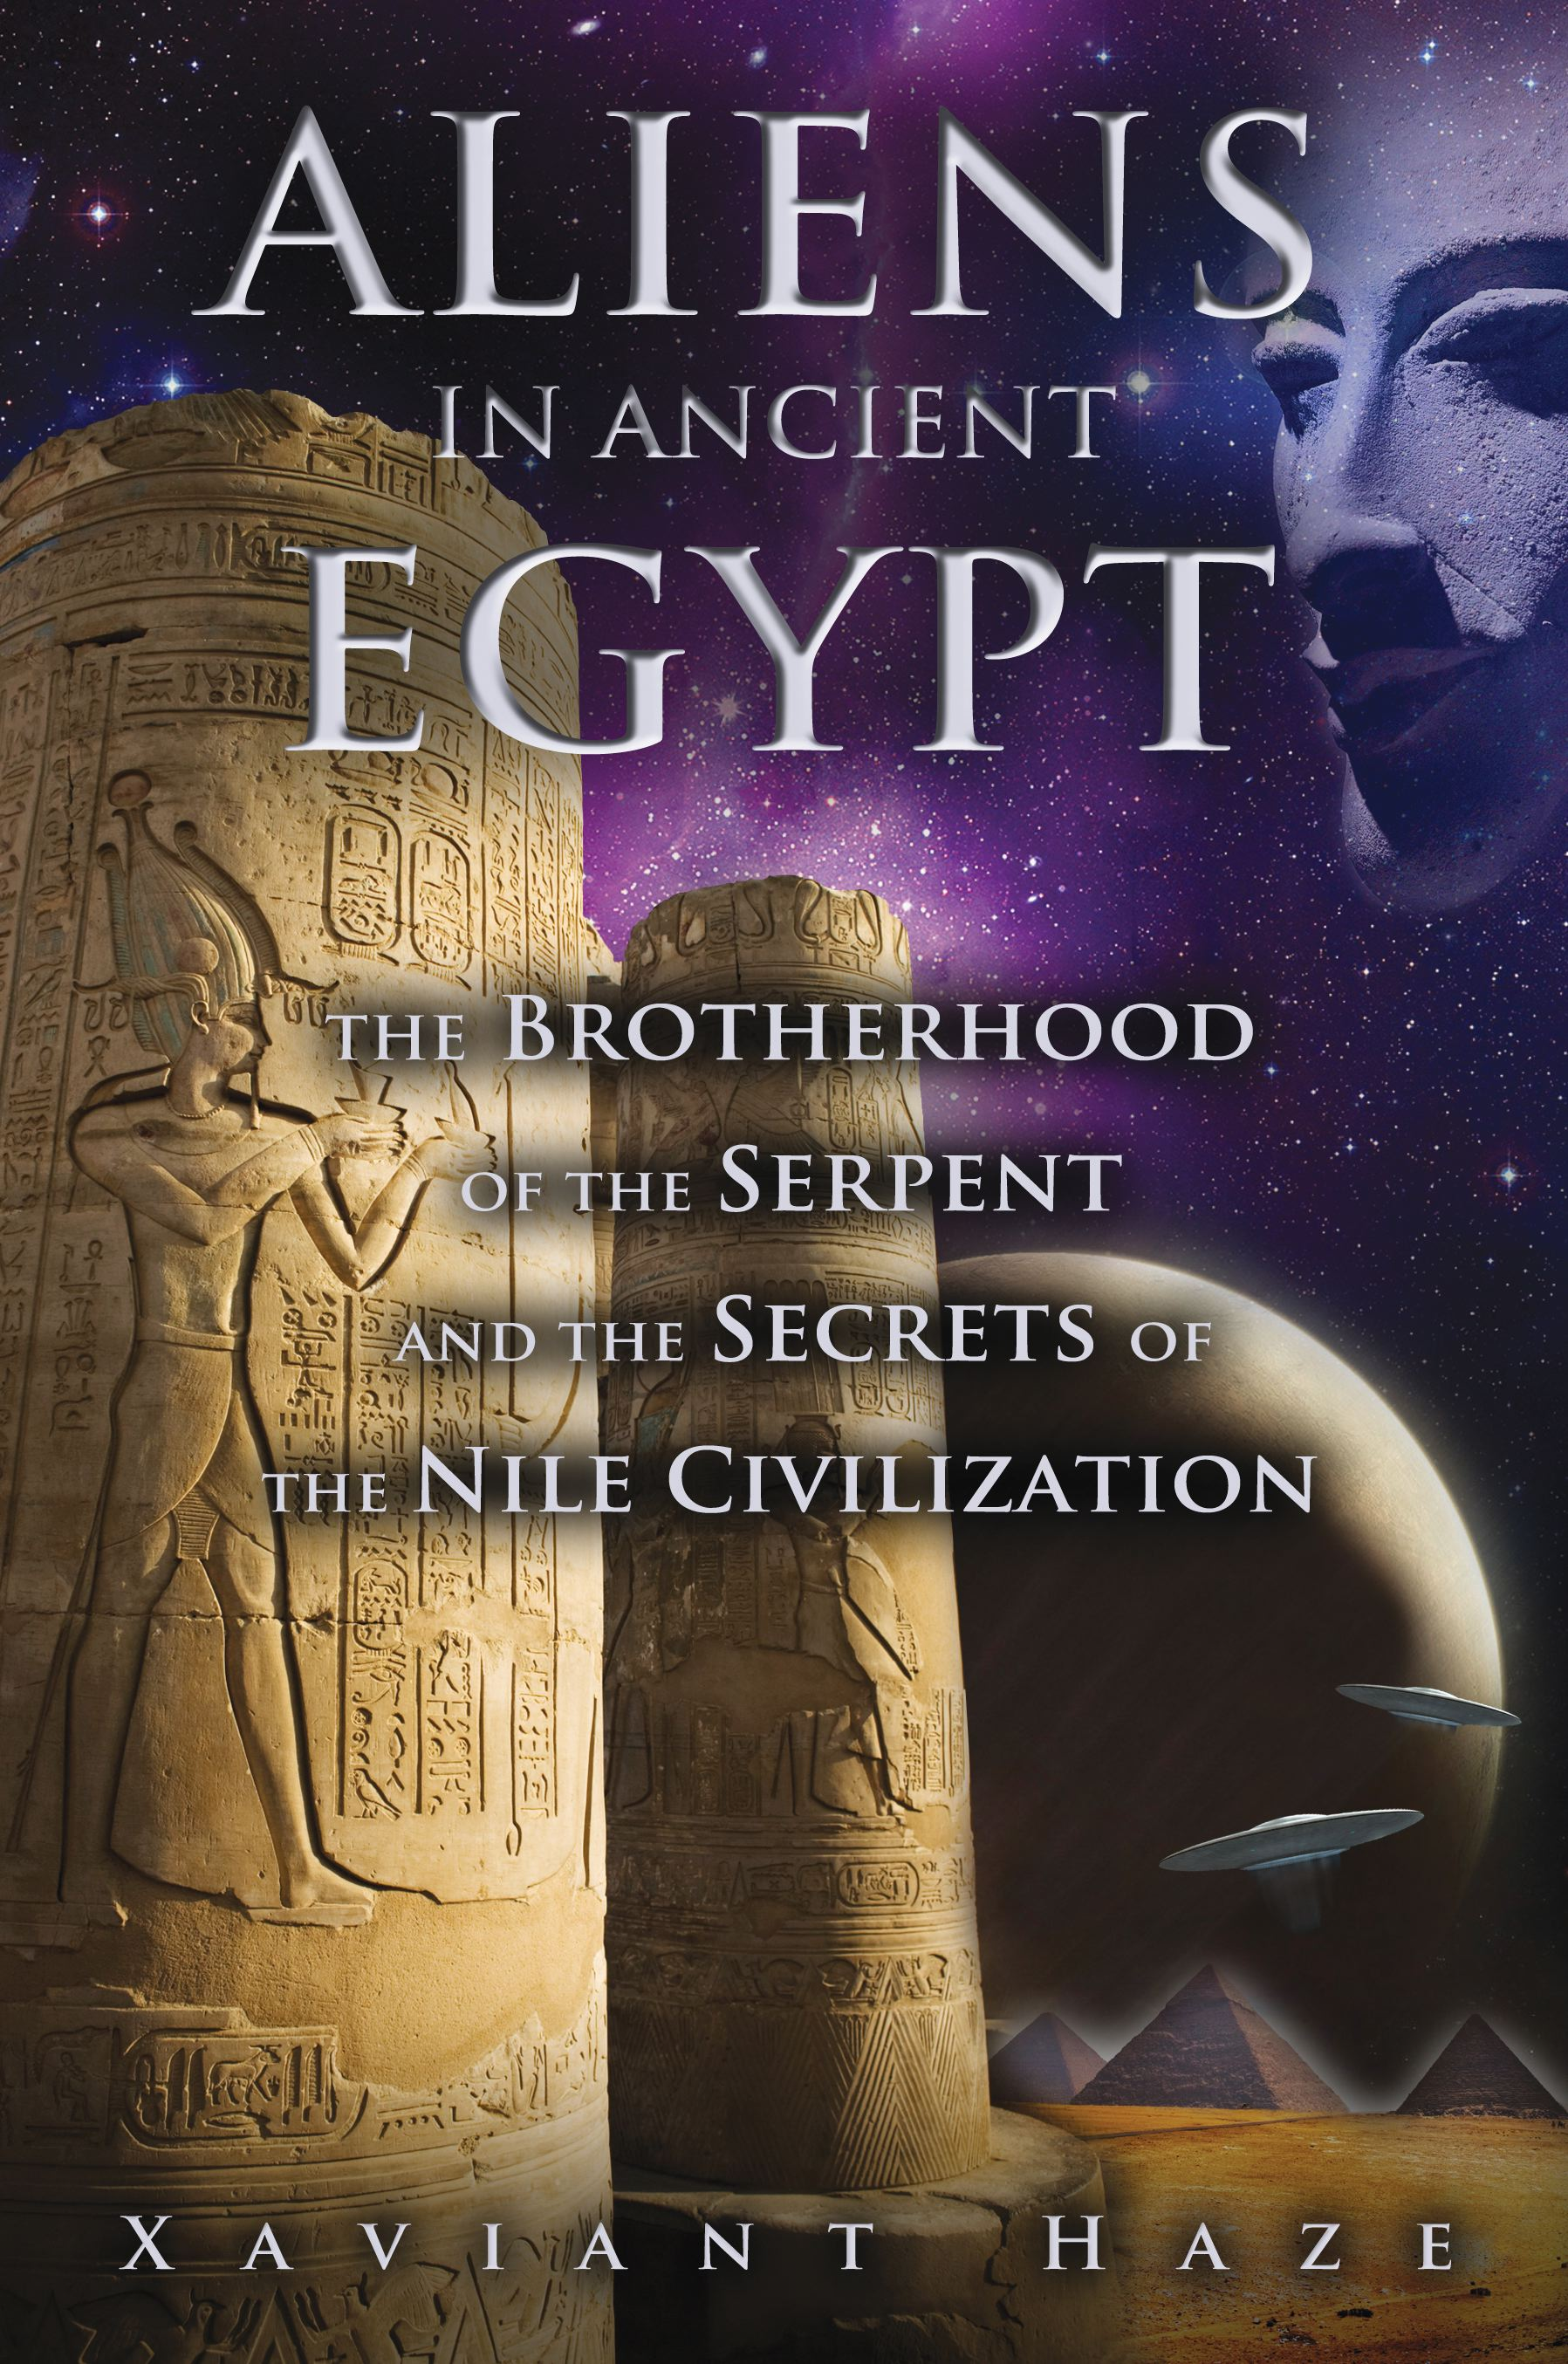 Aliens in ancient egypt 9781591431596 hr